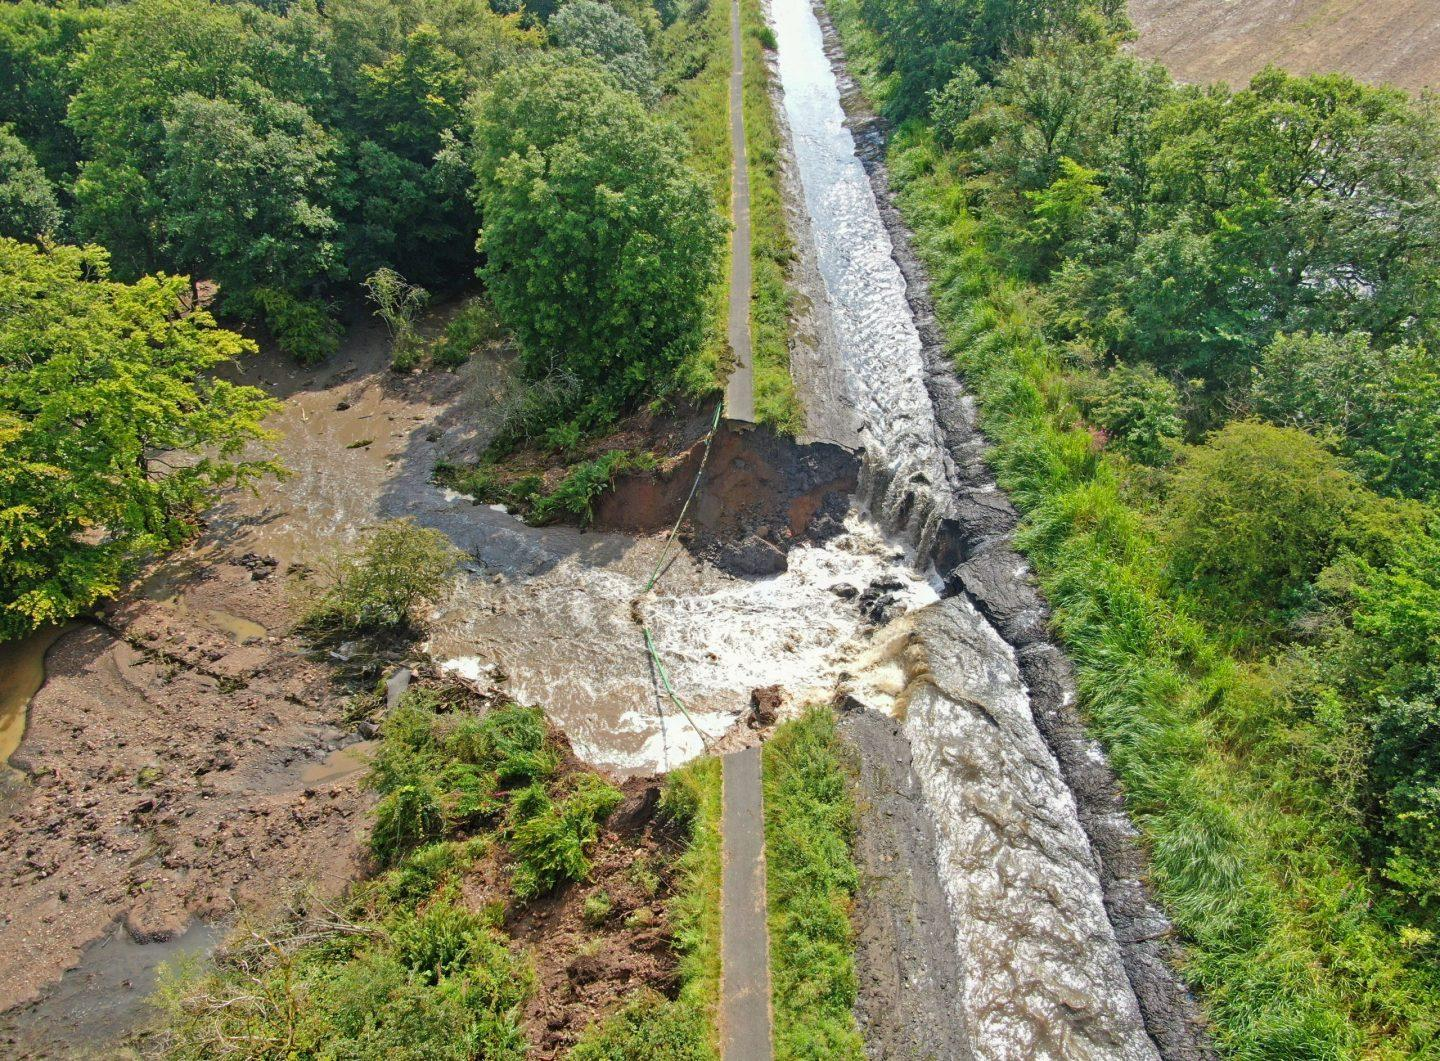 Union Canal: Aerial images show extent of breach near Whitecross and Muiravonside